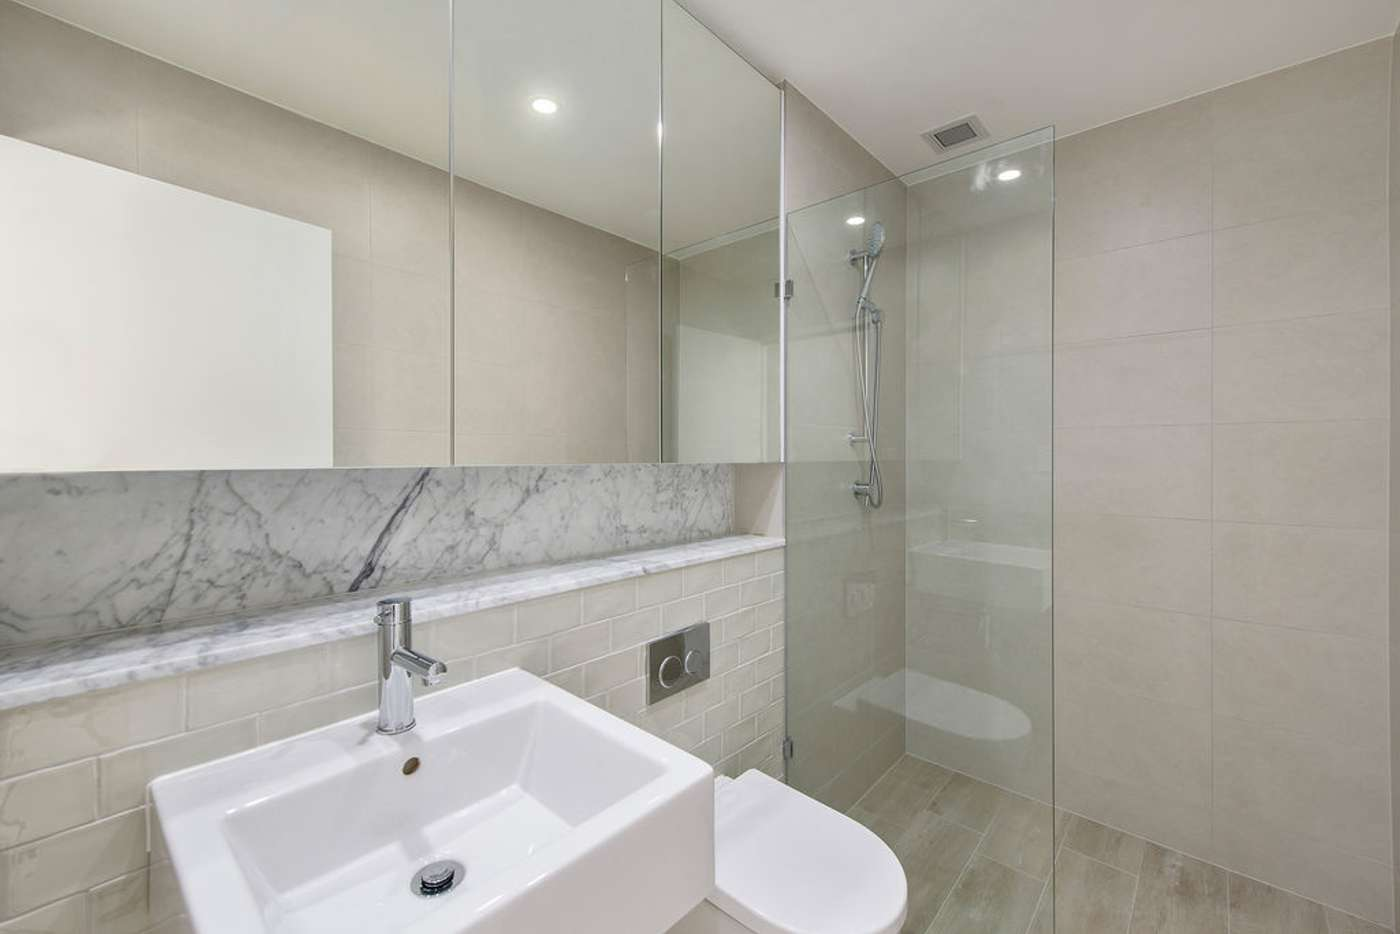 Sixth view of Homely unit listing, 206/128 Willarong Road, Caringbah NSW 2229